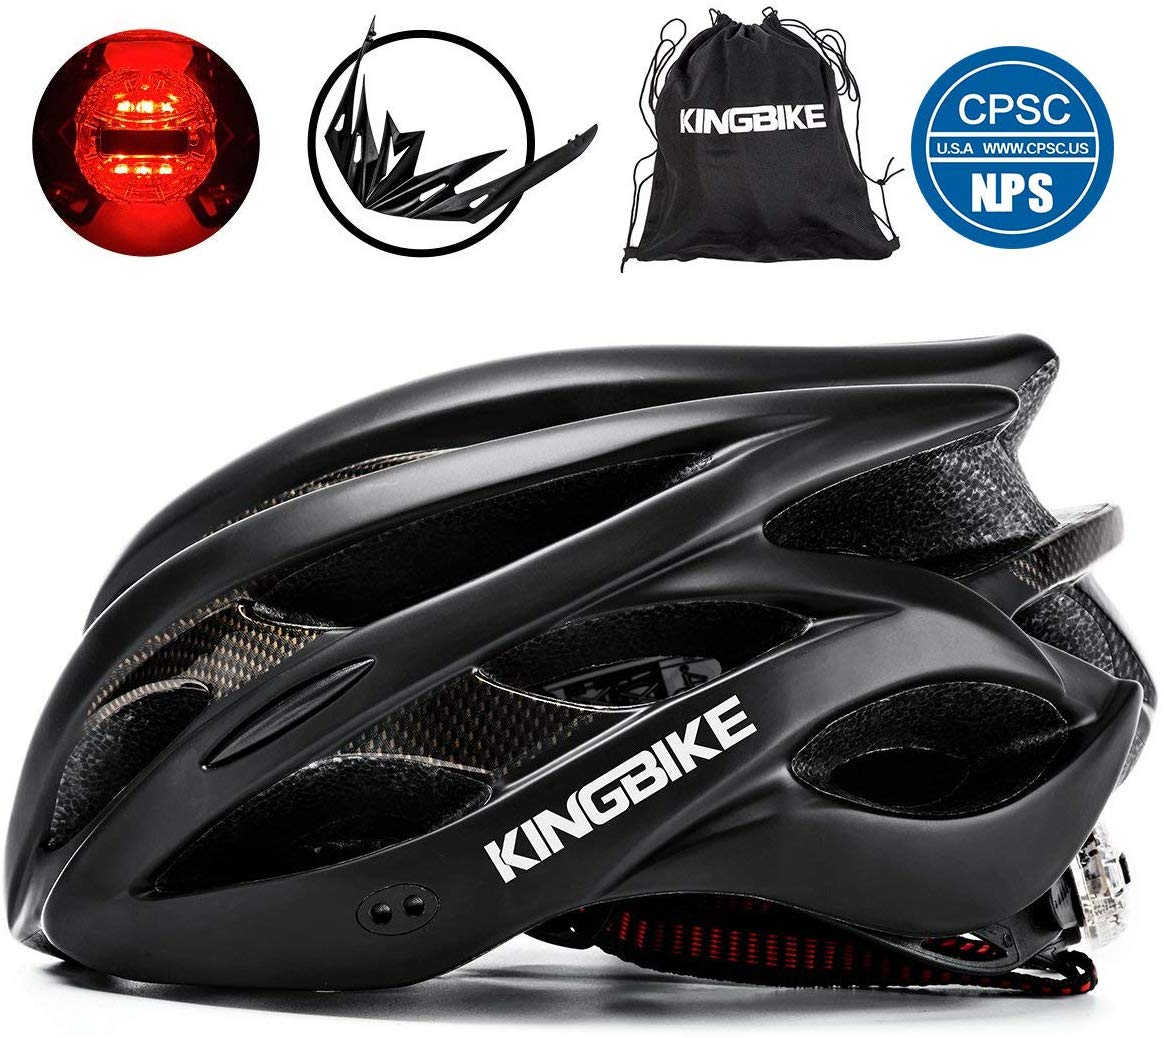 KINGBIKE Ultralight Bike Helmets CPSC&CE Certified with Rear Light + Portable Simple Backpack + Detachable Visor for Men Women